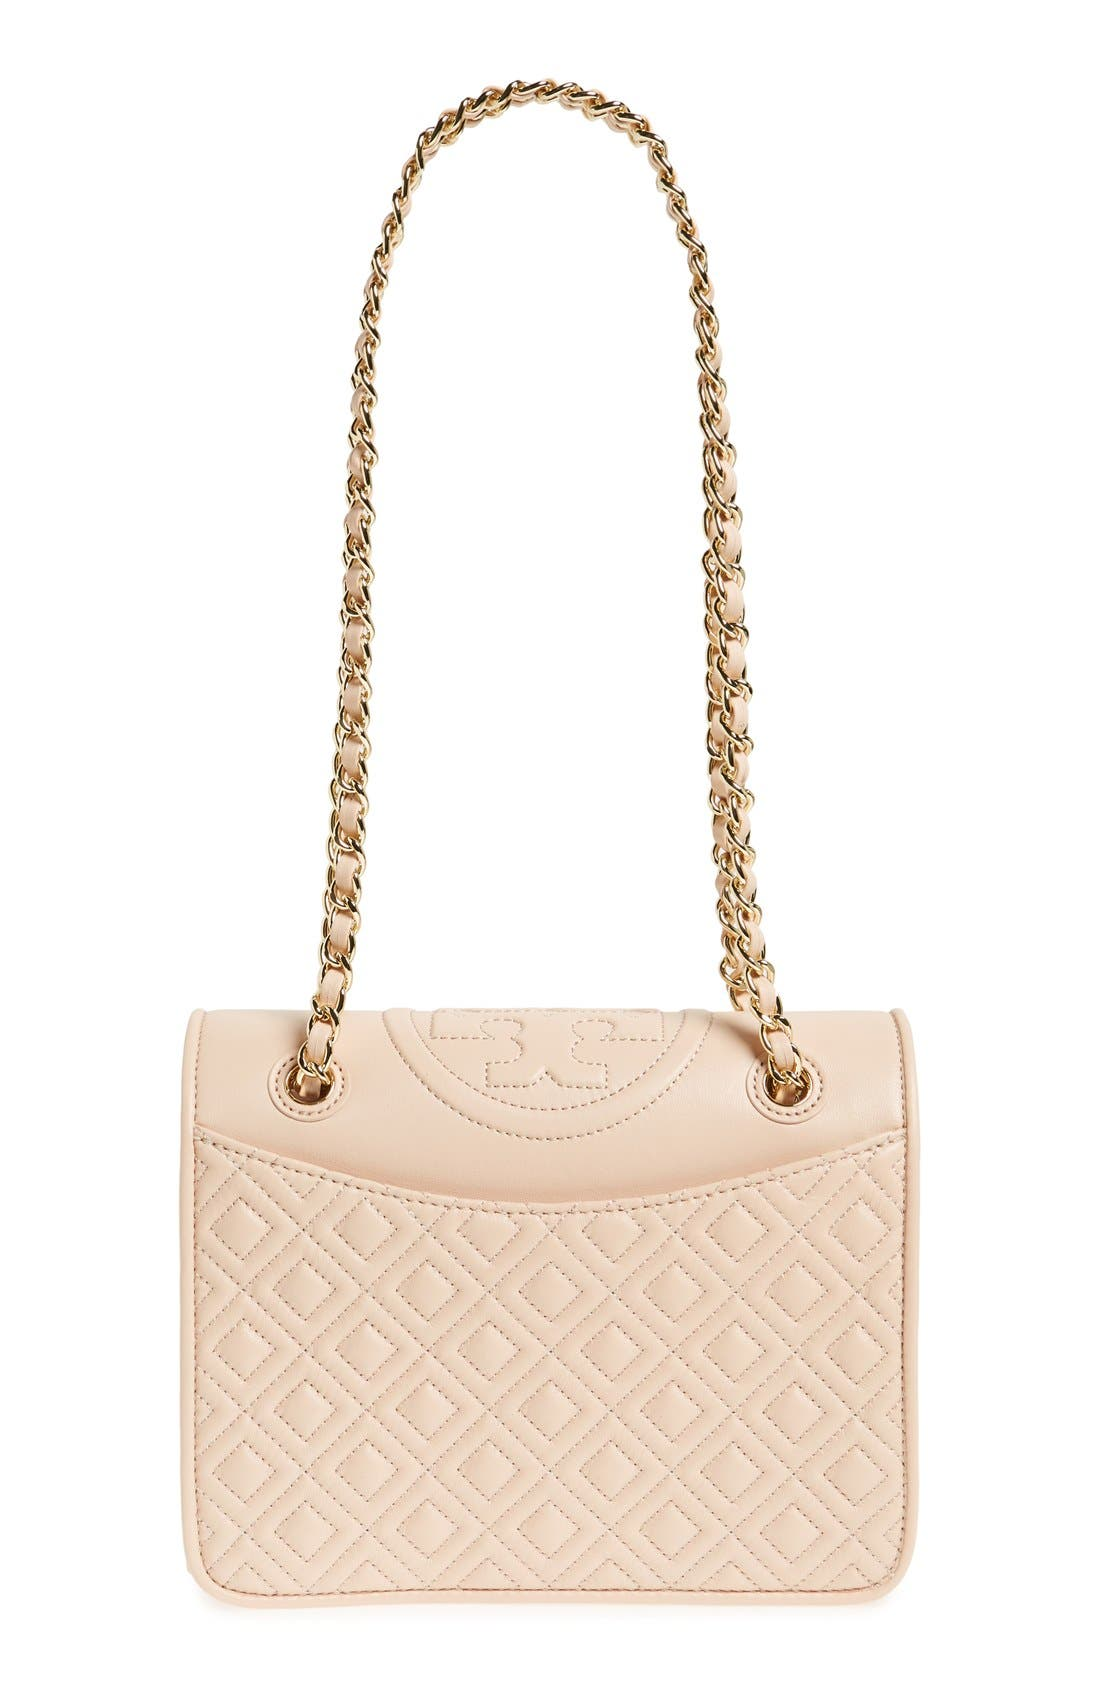 'Medium Fleming' Leather Shoulder Bag,                         Main,                         color, Pale Apricot